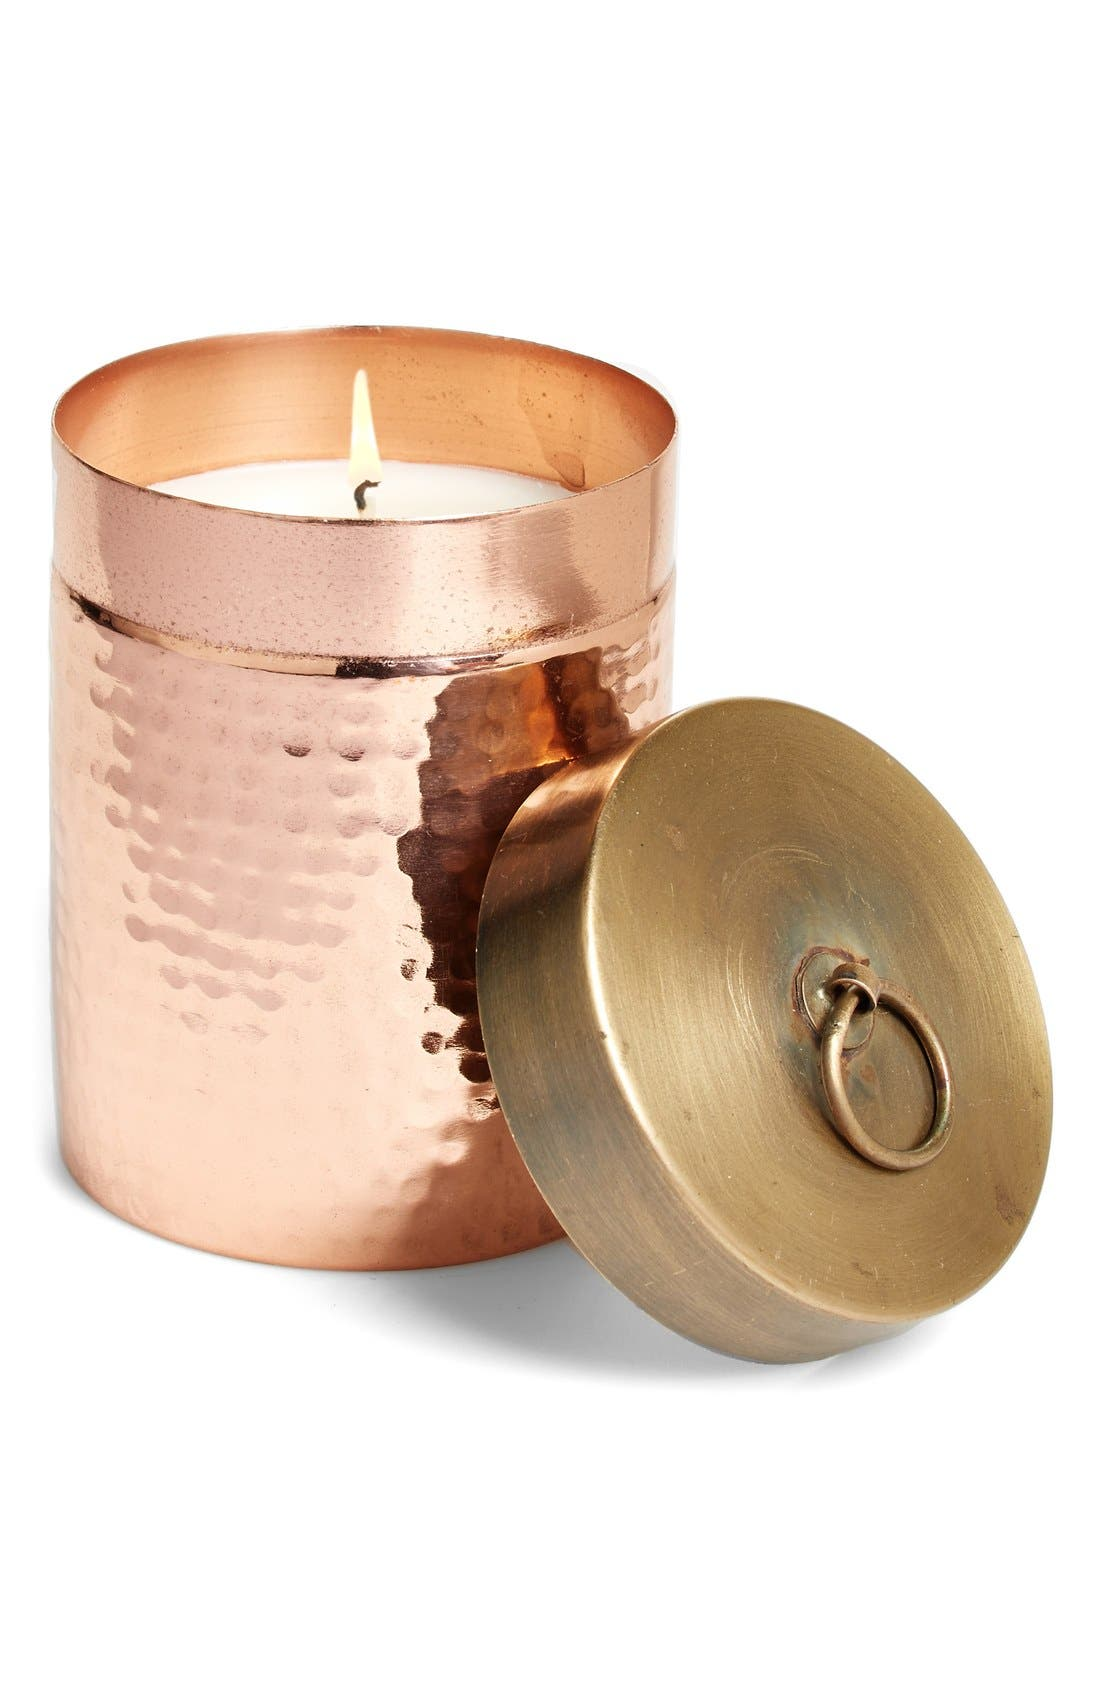 Alternate Image 1 Selected - Found Goods Market 'Homestead' Hammered Canister Candle